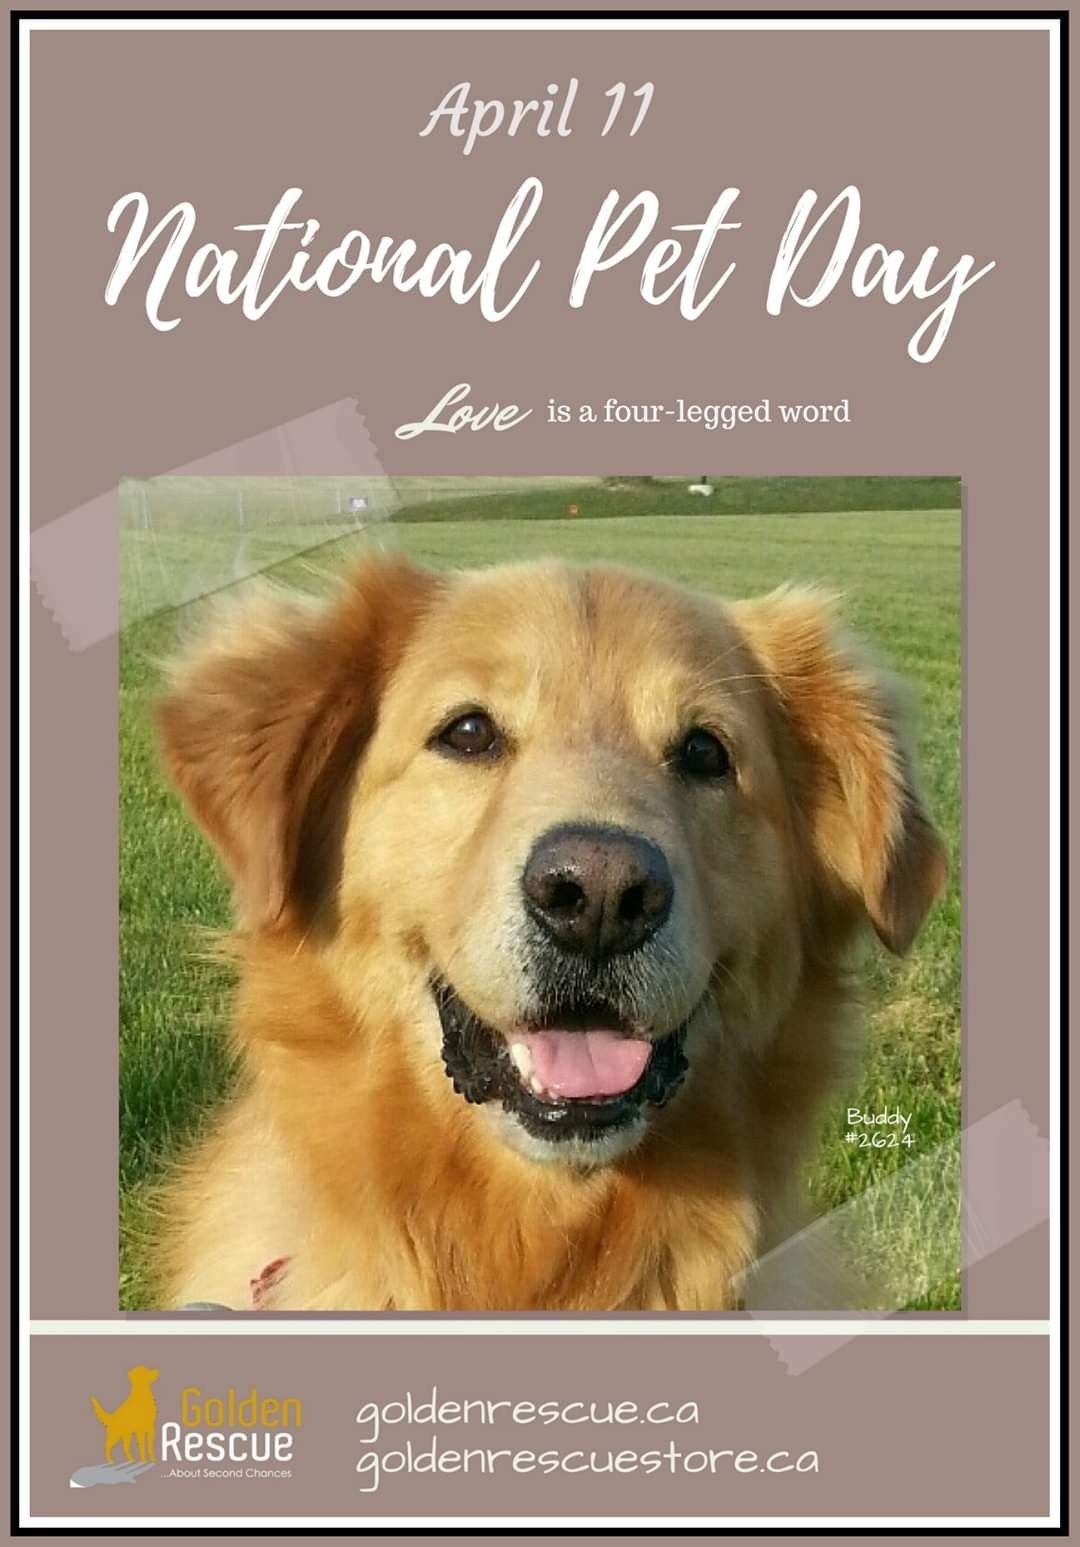 April 11 is National Pet Day. While loving our pets is